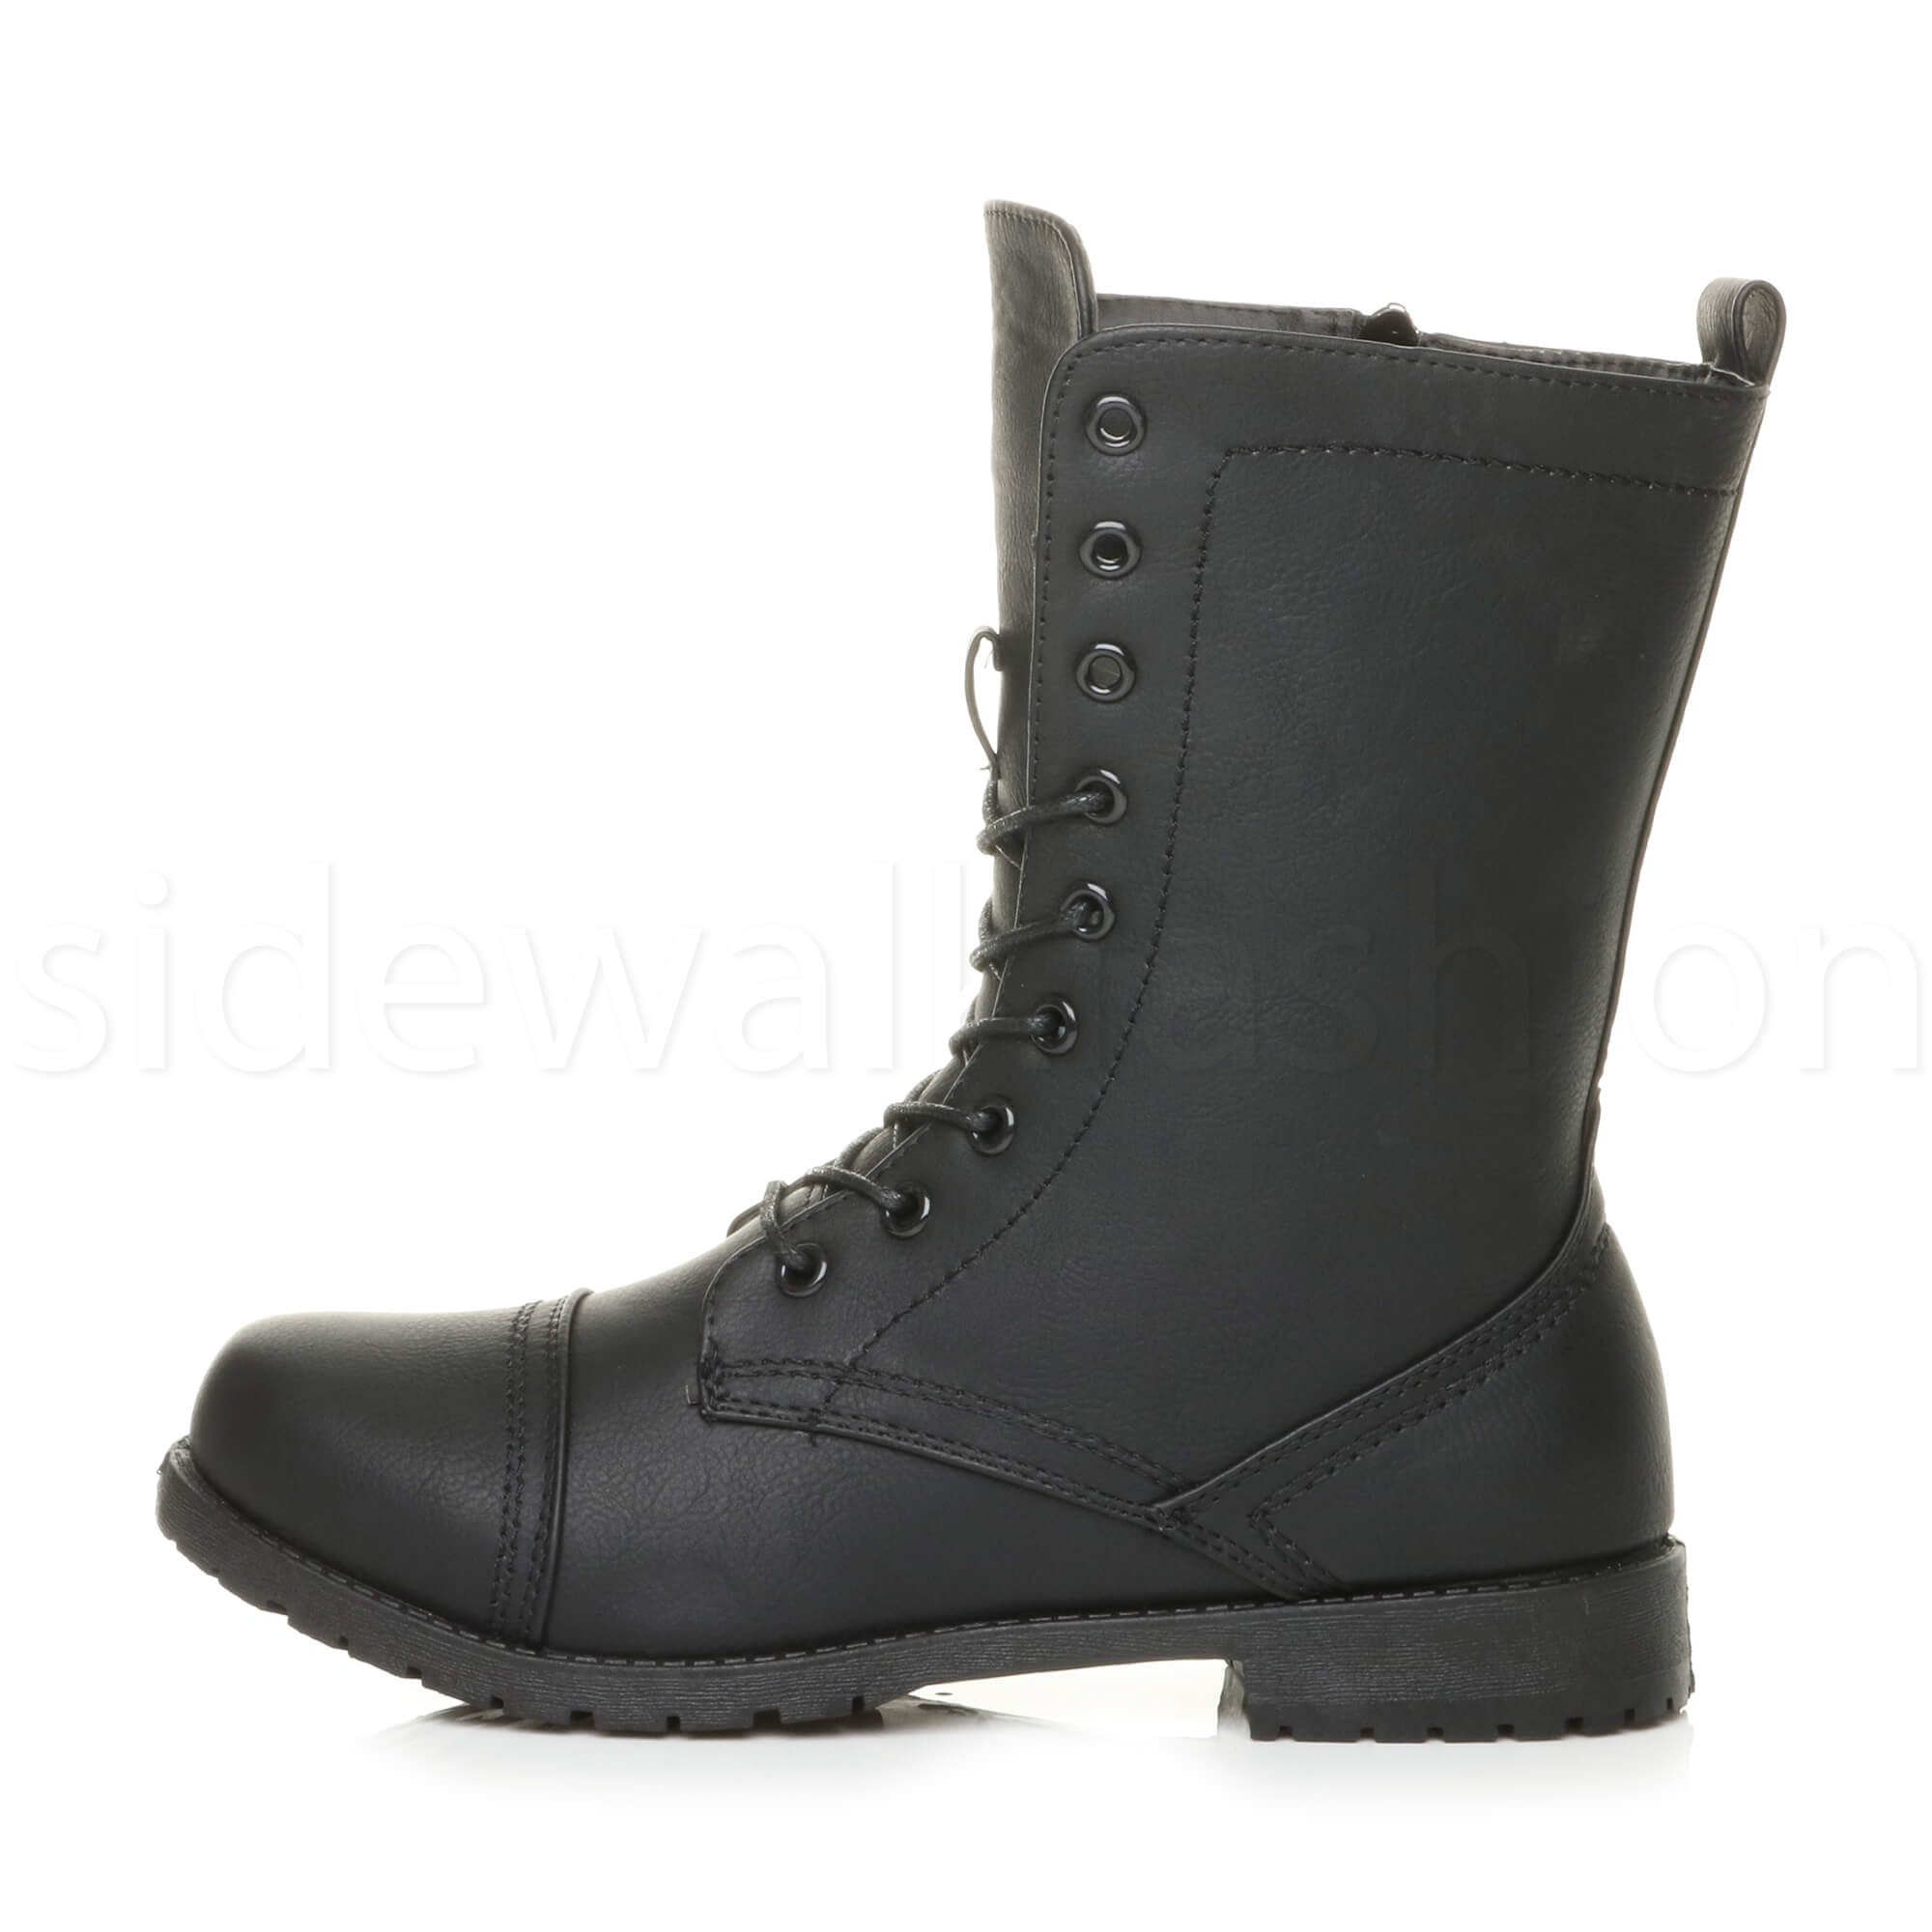 Womens-ladies-low-heel-flat-lace-up-zip-combat-biker-military-ankle-boots-size thumbnail 59